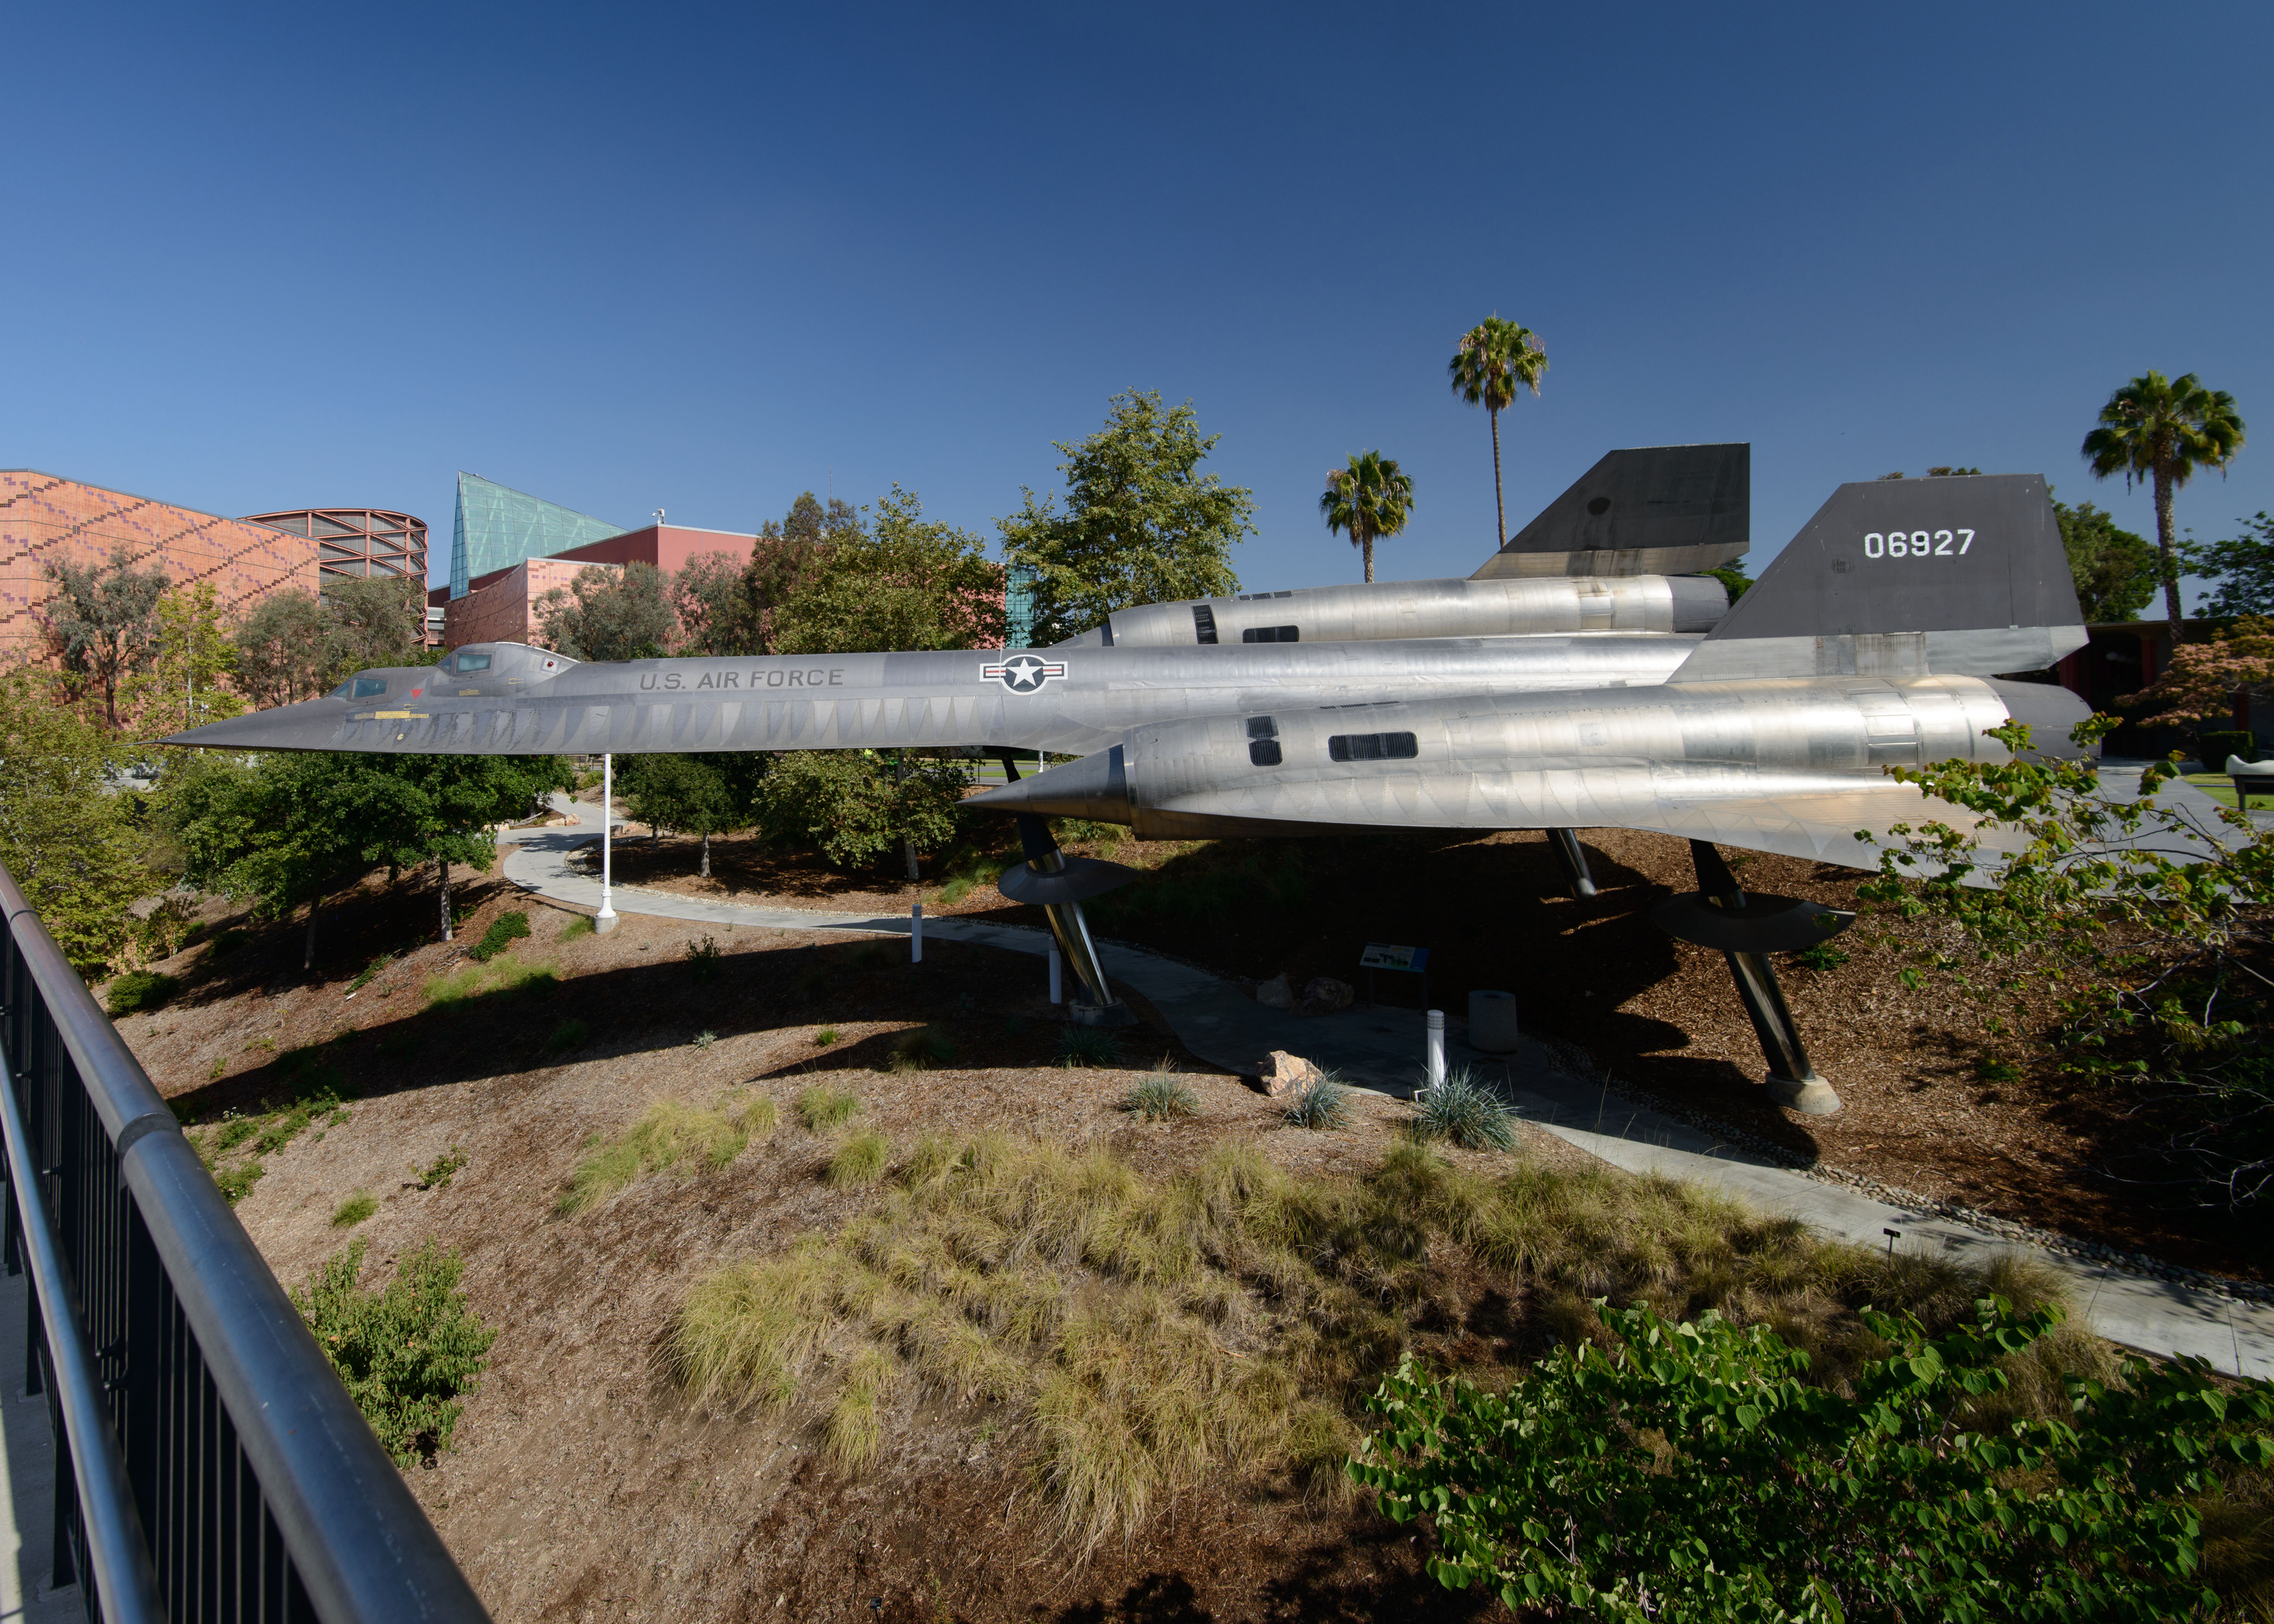 A-12 on display in the Roy A. Anderson Blackbird Exhibit and Garden